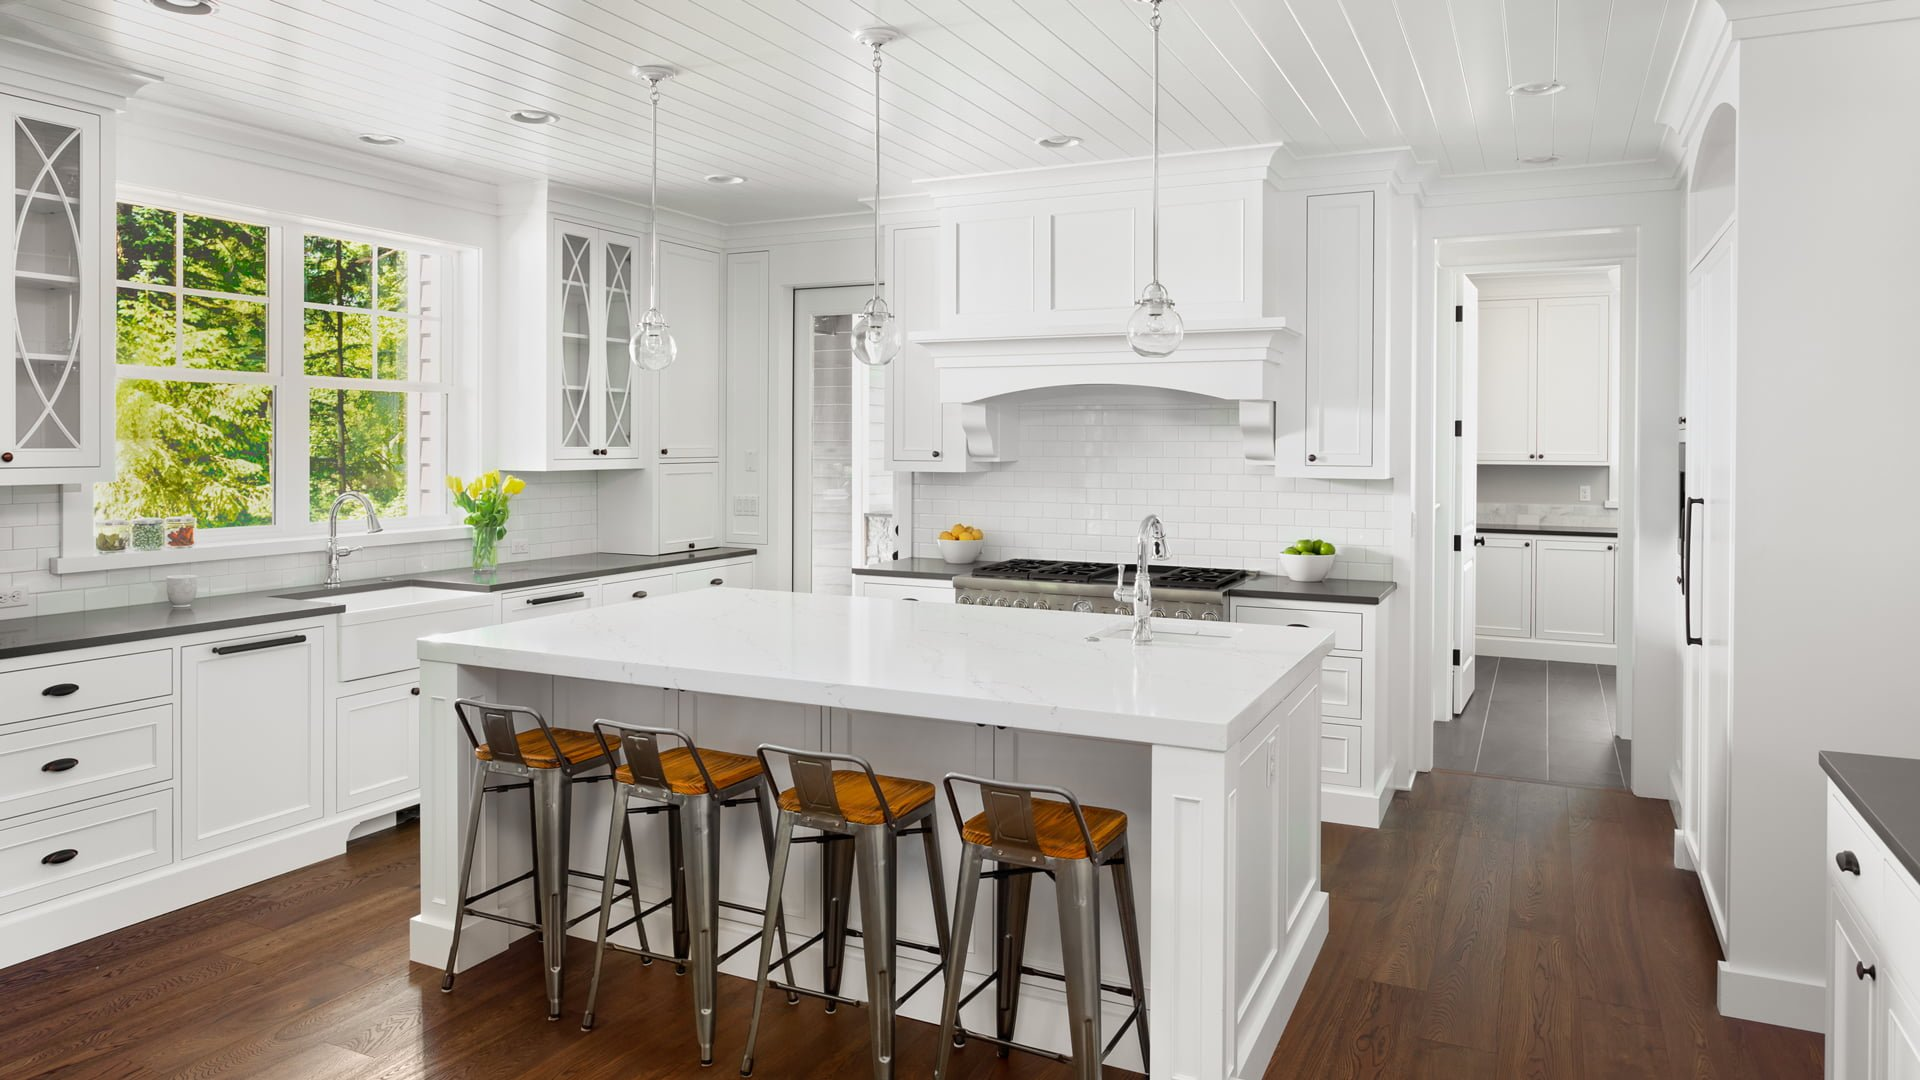 Kitchen Laminate Benchtops Decorative Kitchen How To Make This Space Into Something